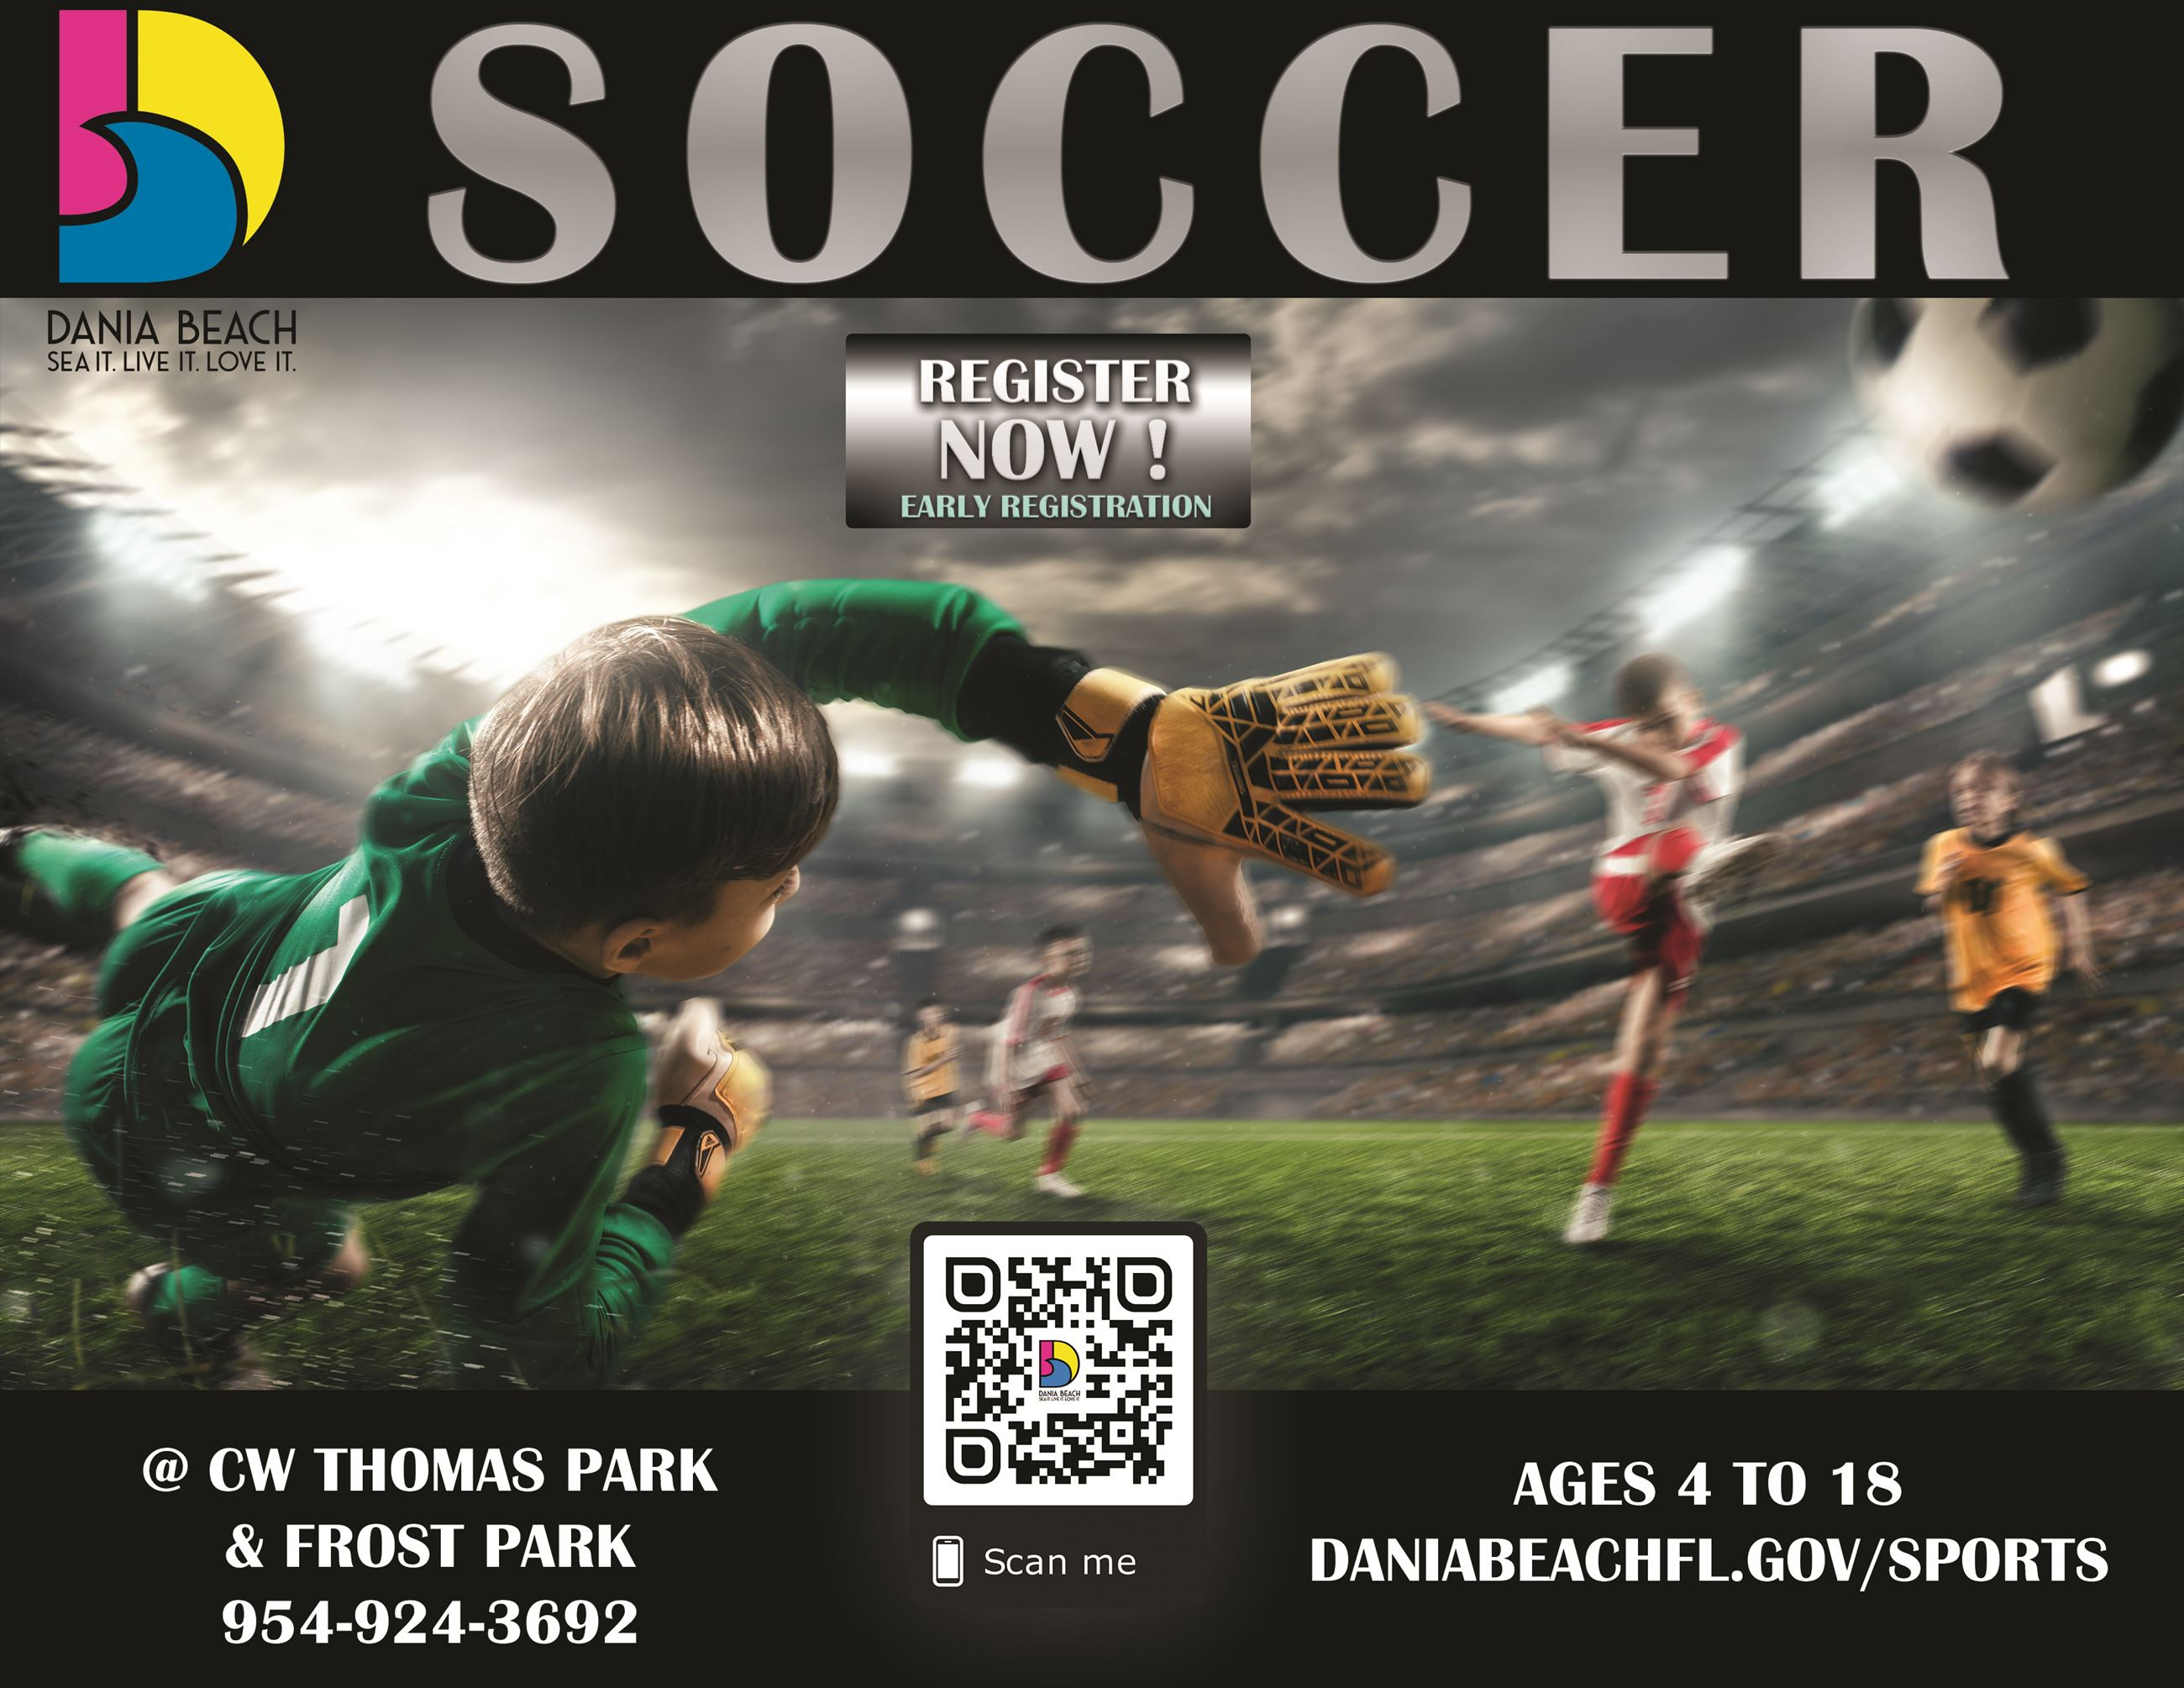 Dania Beach Soccer - Sports & Athletics